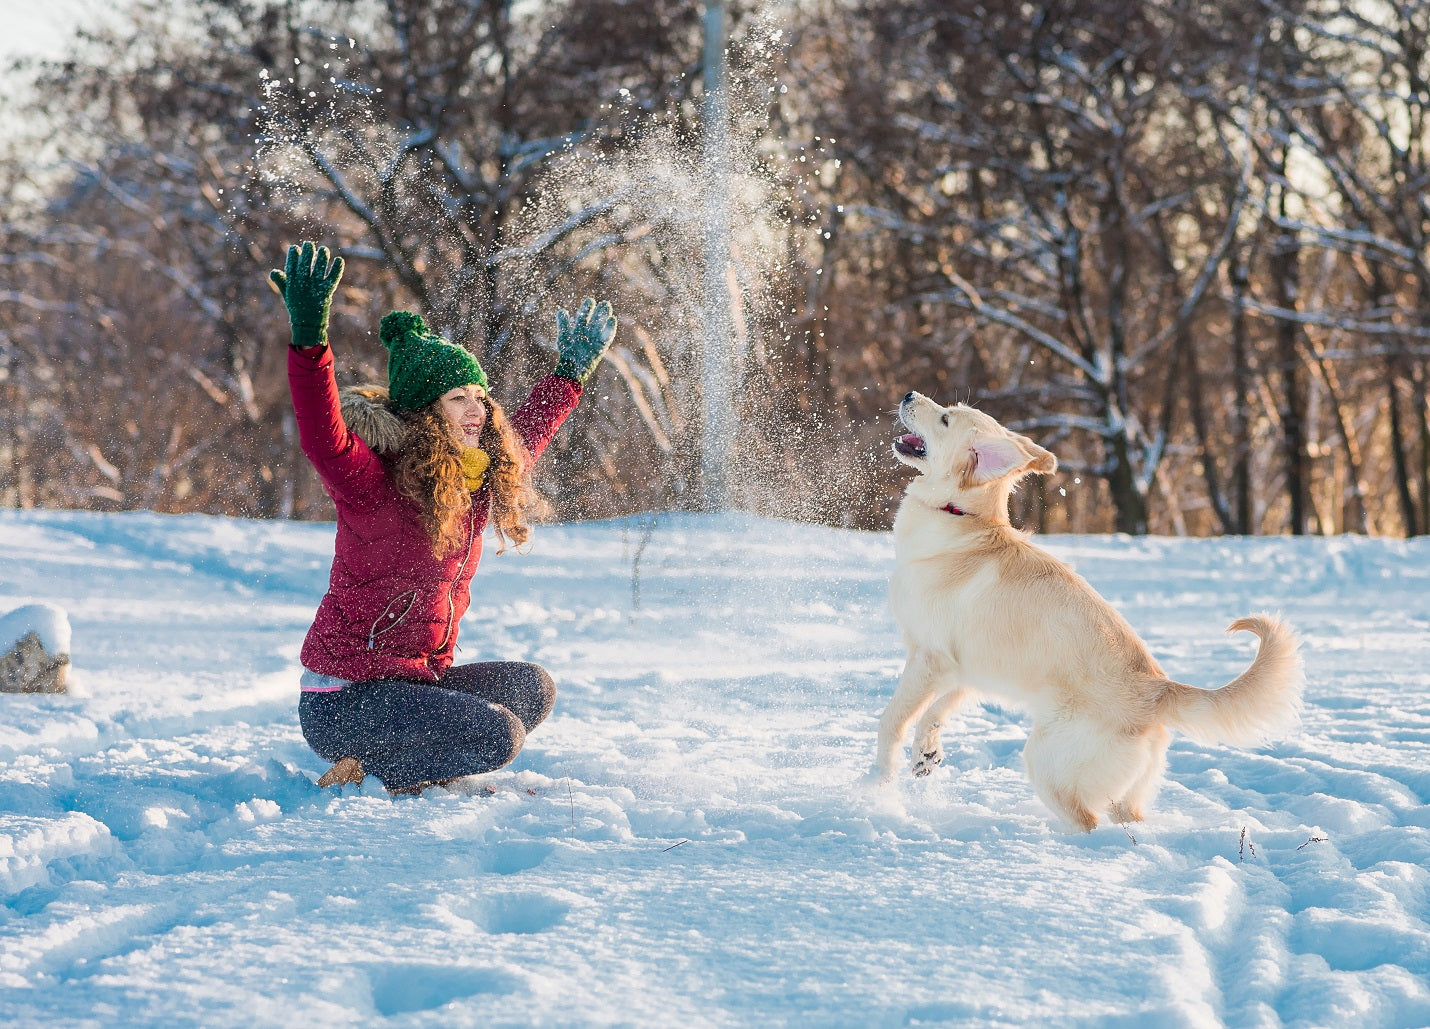 woman plays with dog in snow to get exercise to overcome SAD